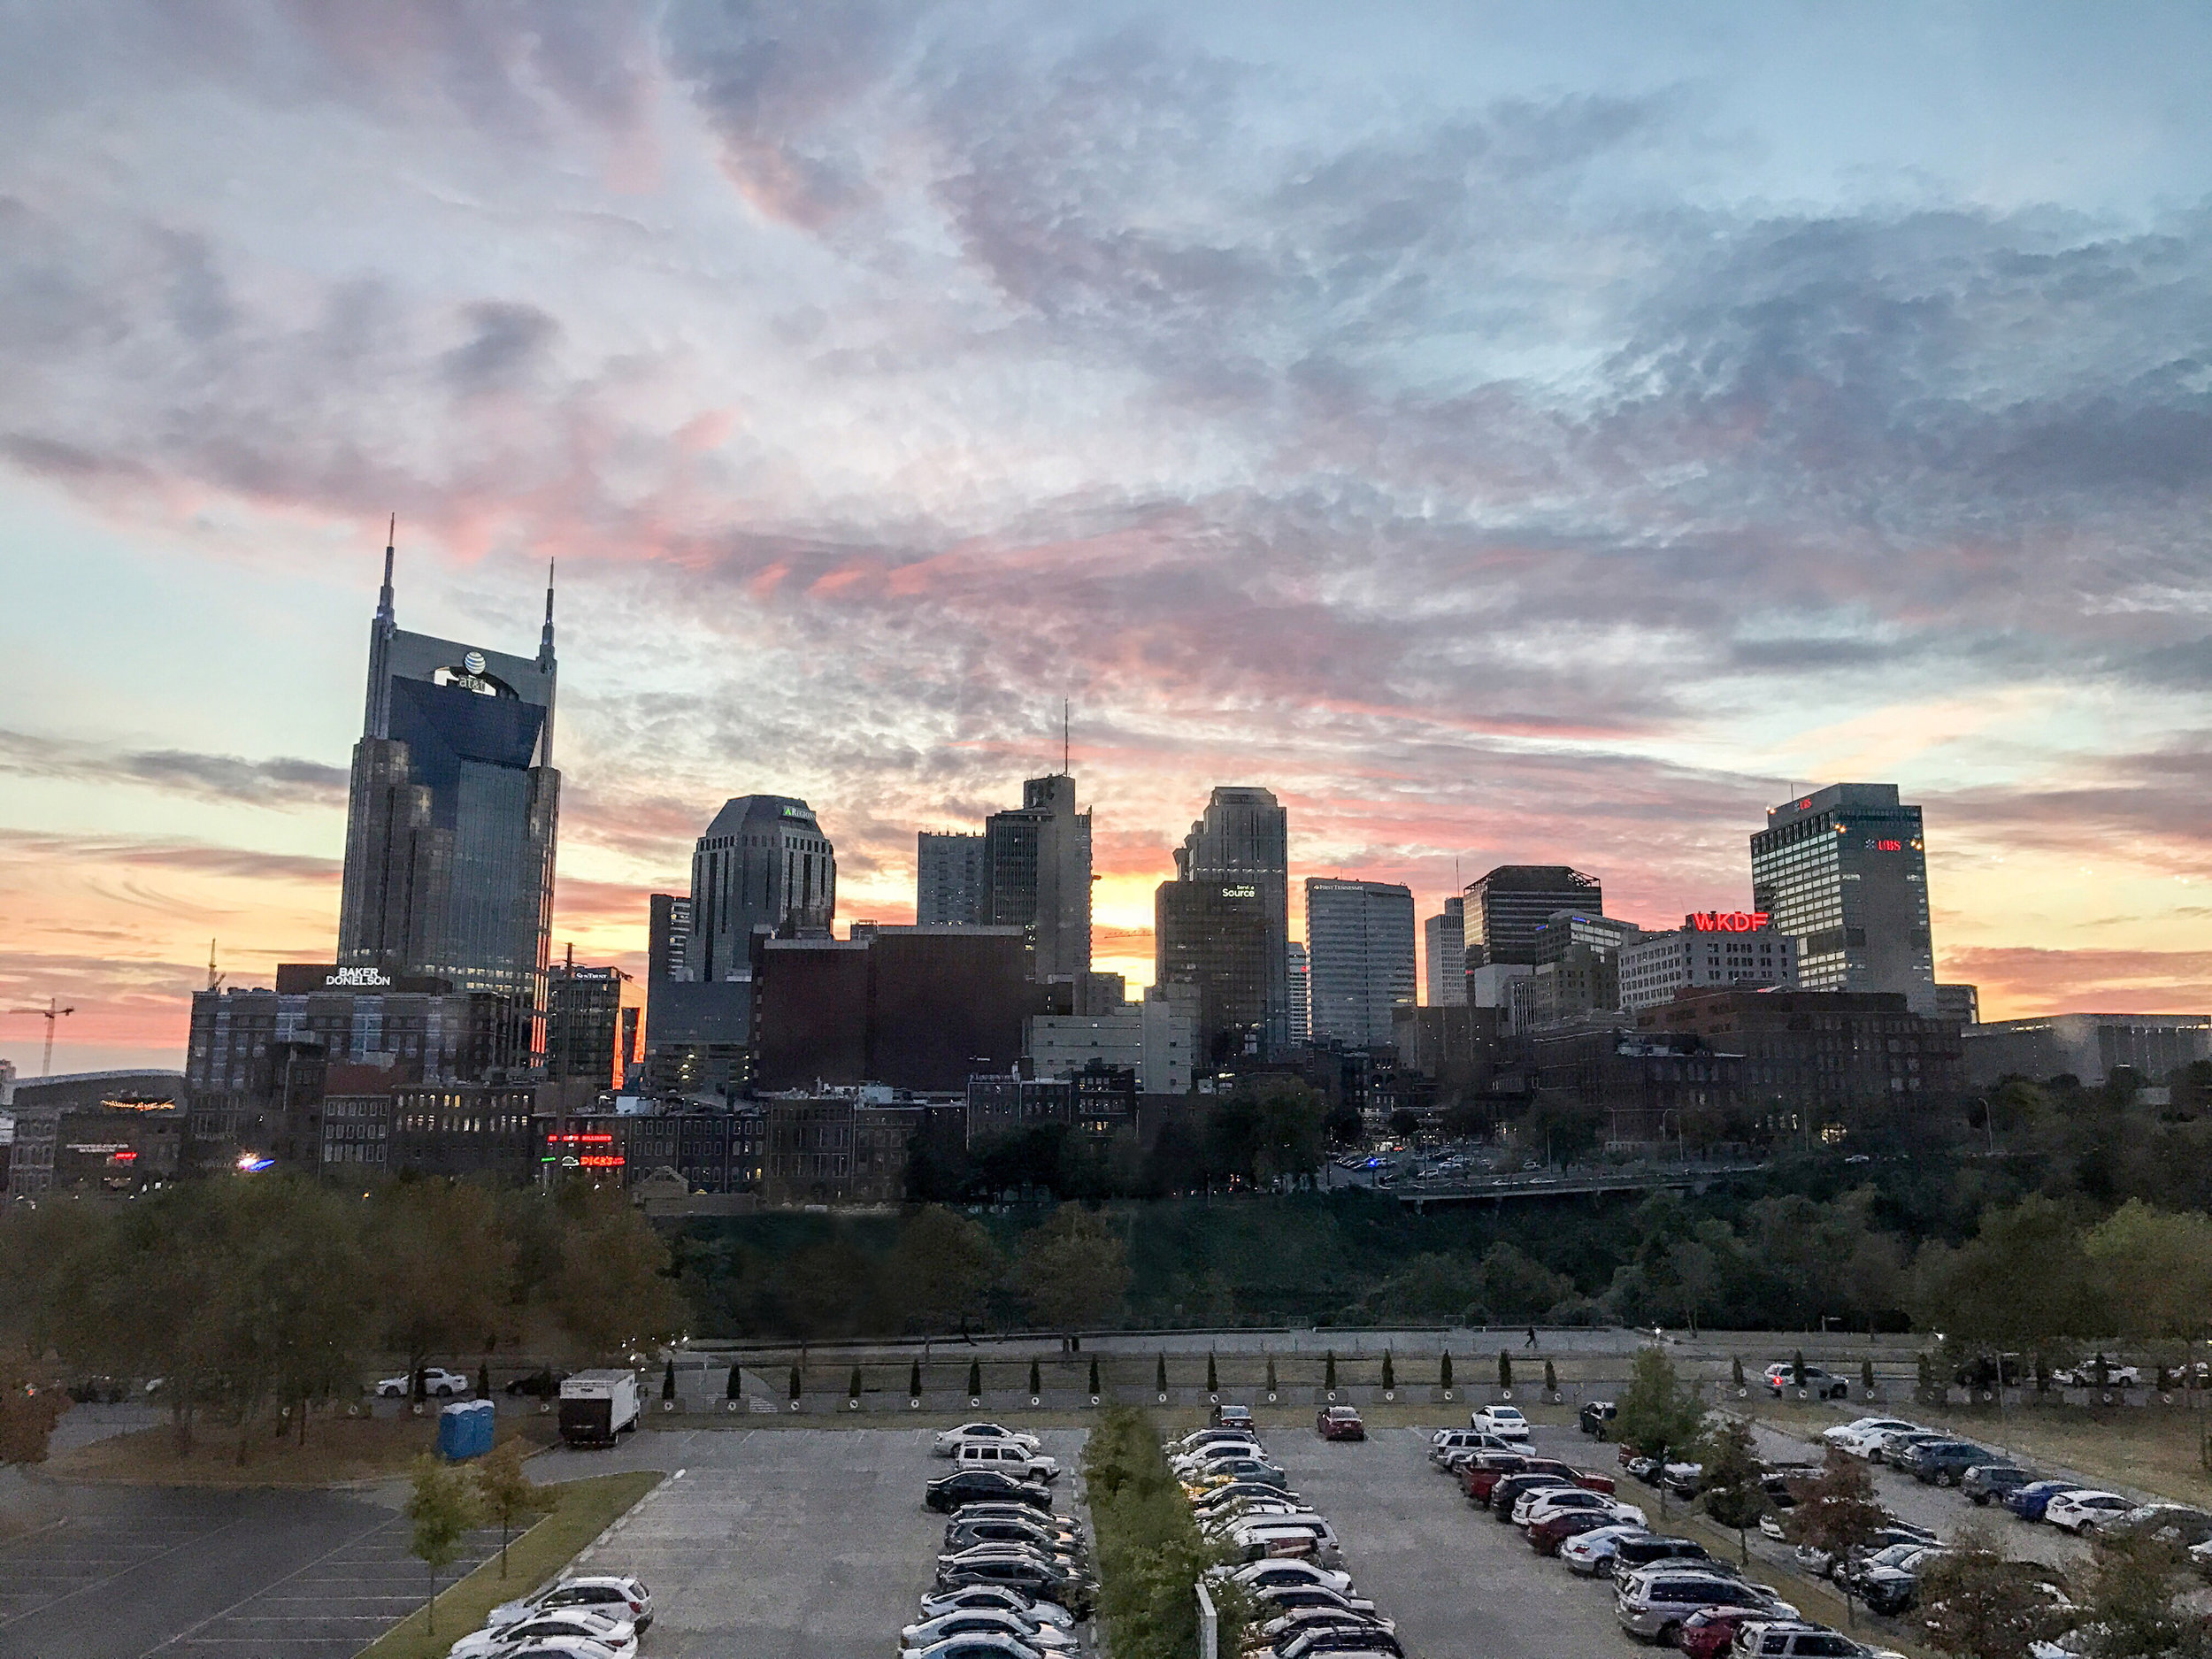 Nashville_Skyline_Picture_Ron_Snitker_Nov_6_2016_edited.jpg